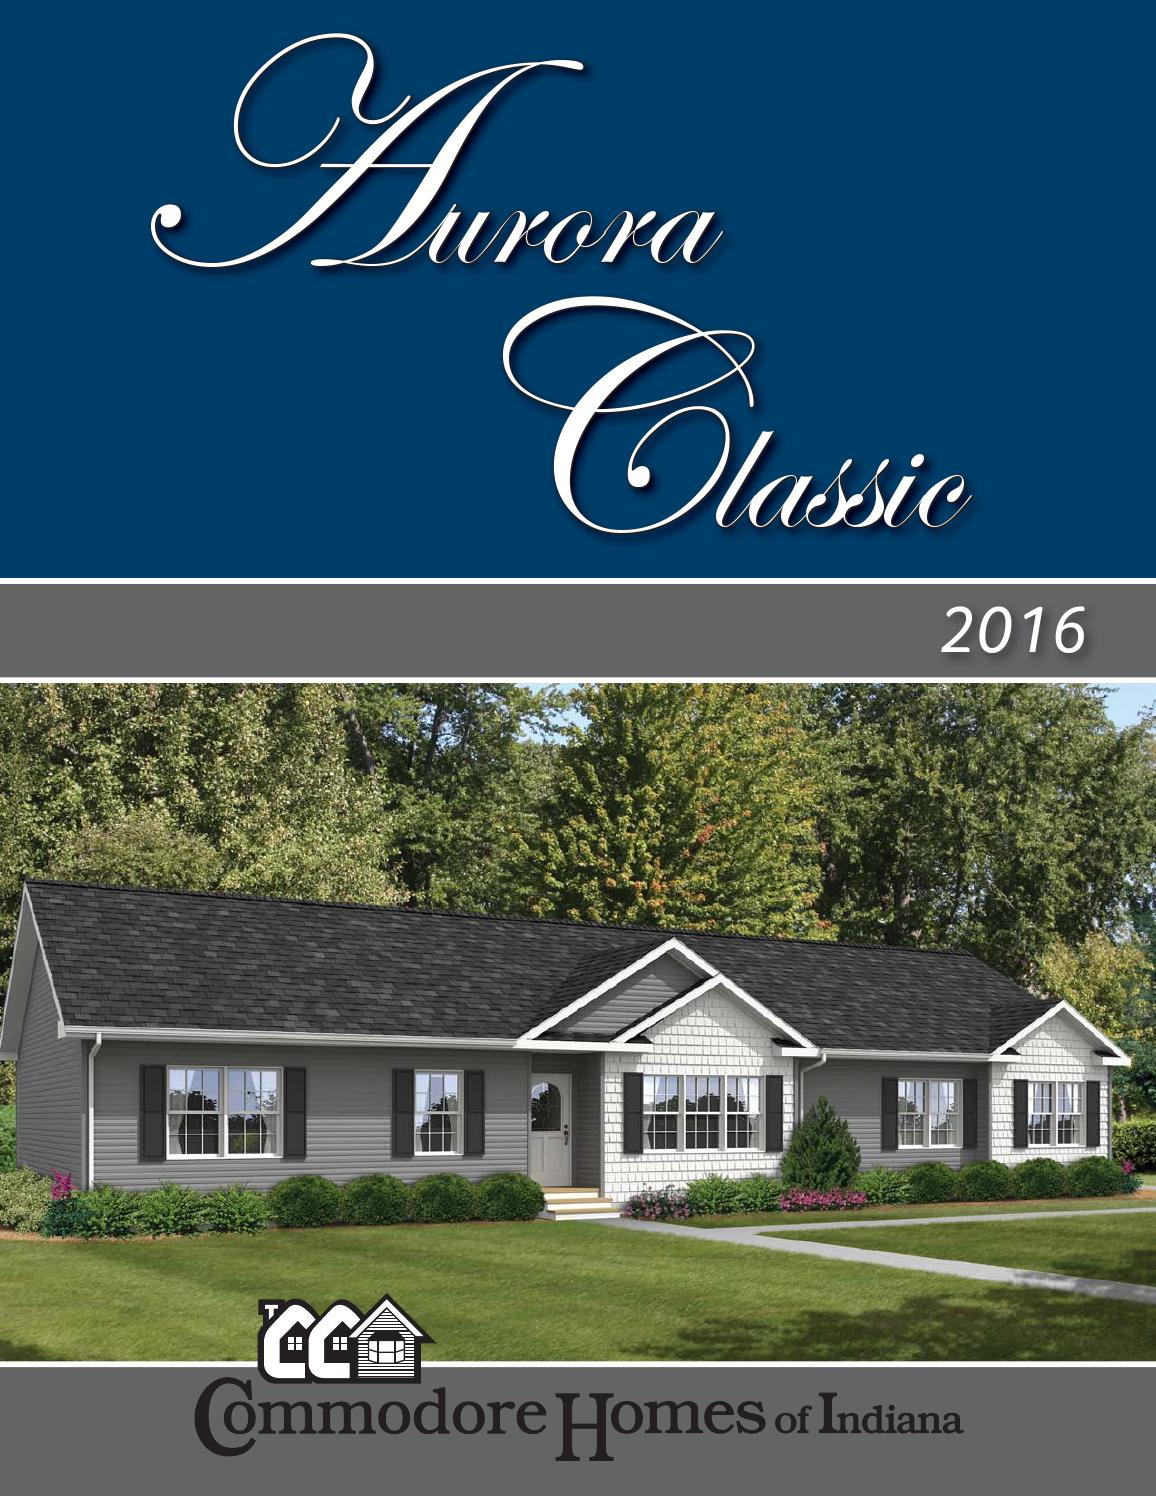 Aurora Classic Modular 2016 W Links By The Commodore